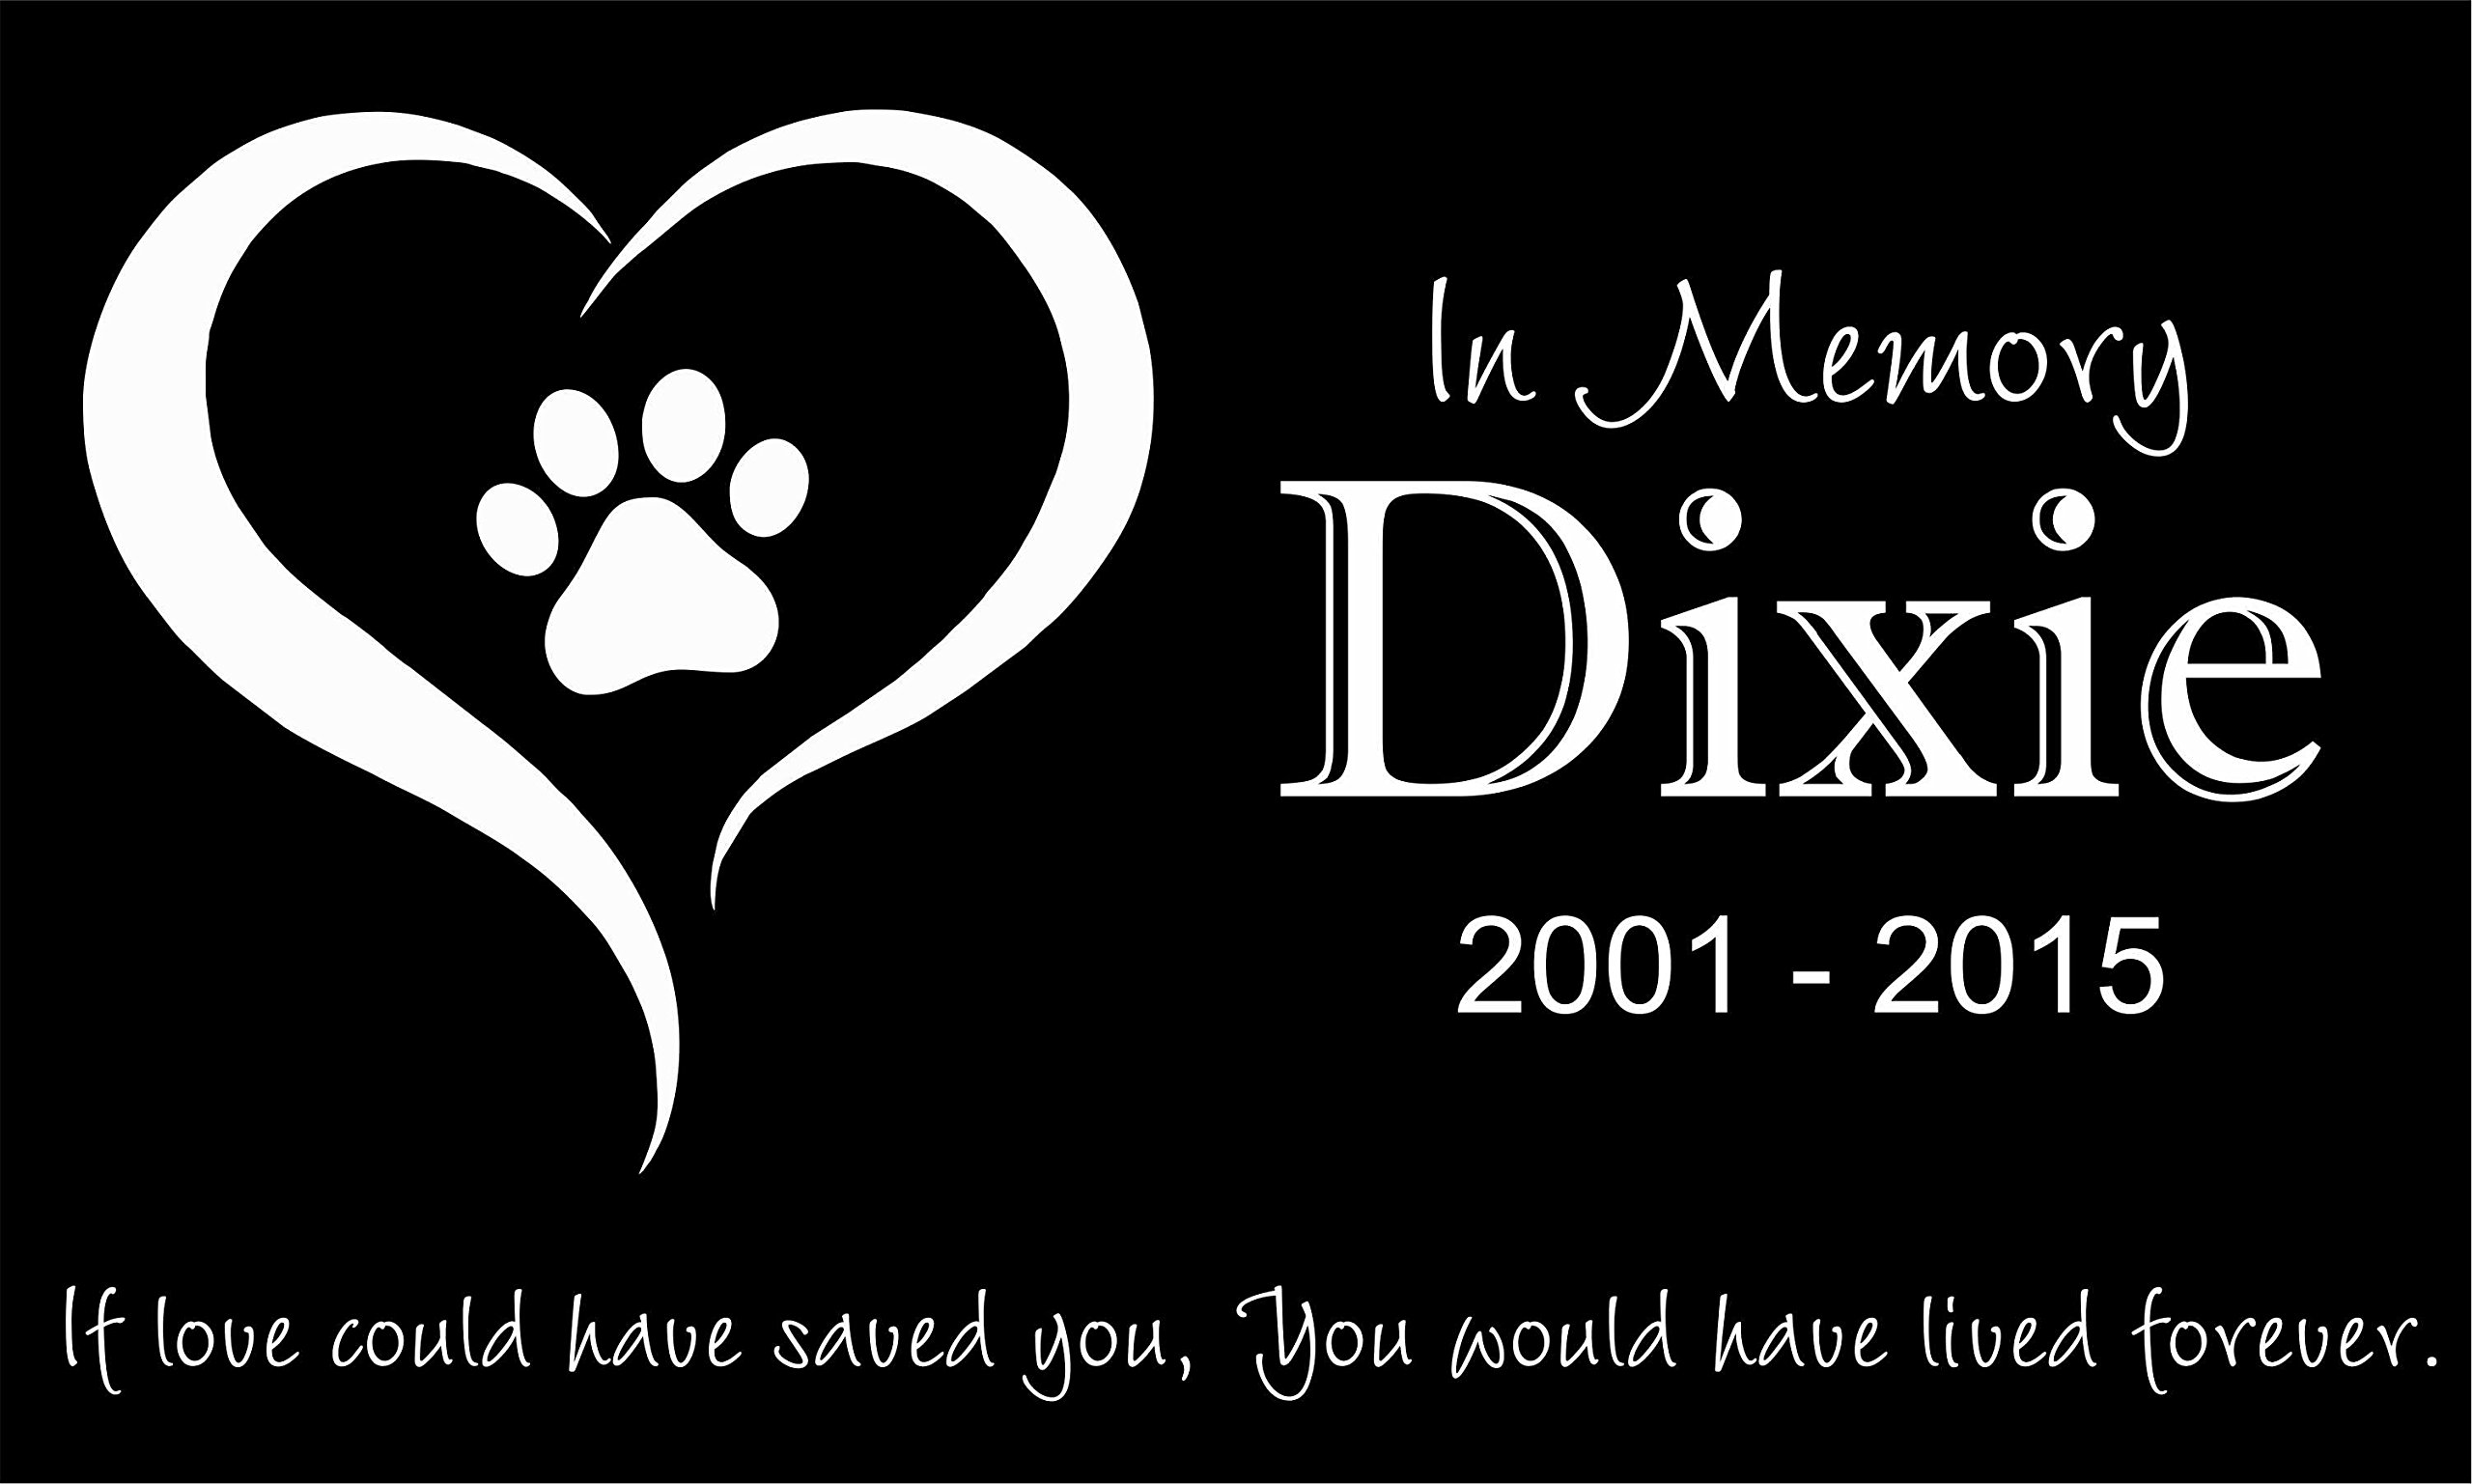 Custom Made Pet Stone Memorial Marker Granite Marker Dog Cat Horse Bird Human 6'' X 10'' Personalized Personalised Human Person People Family